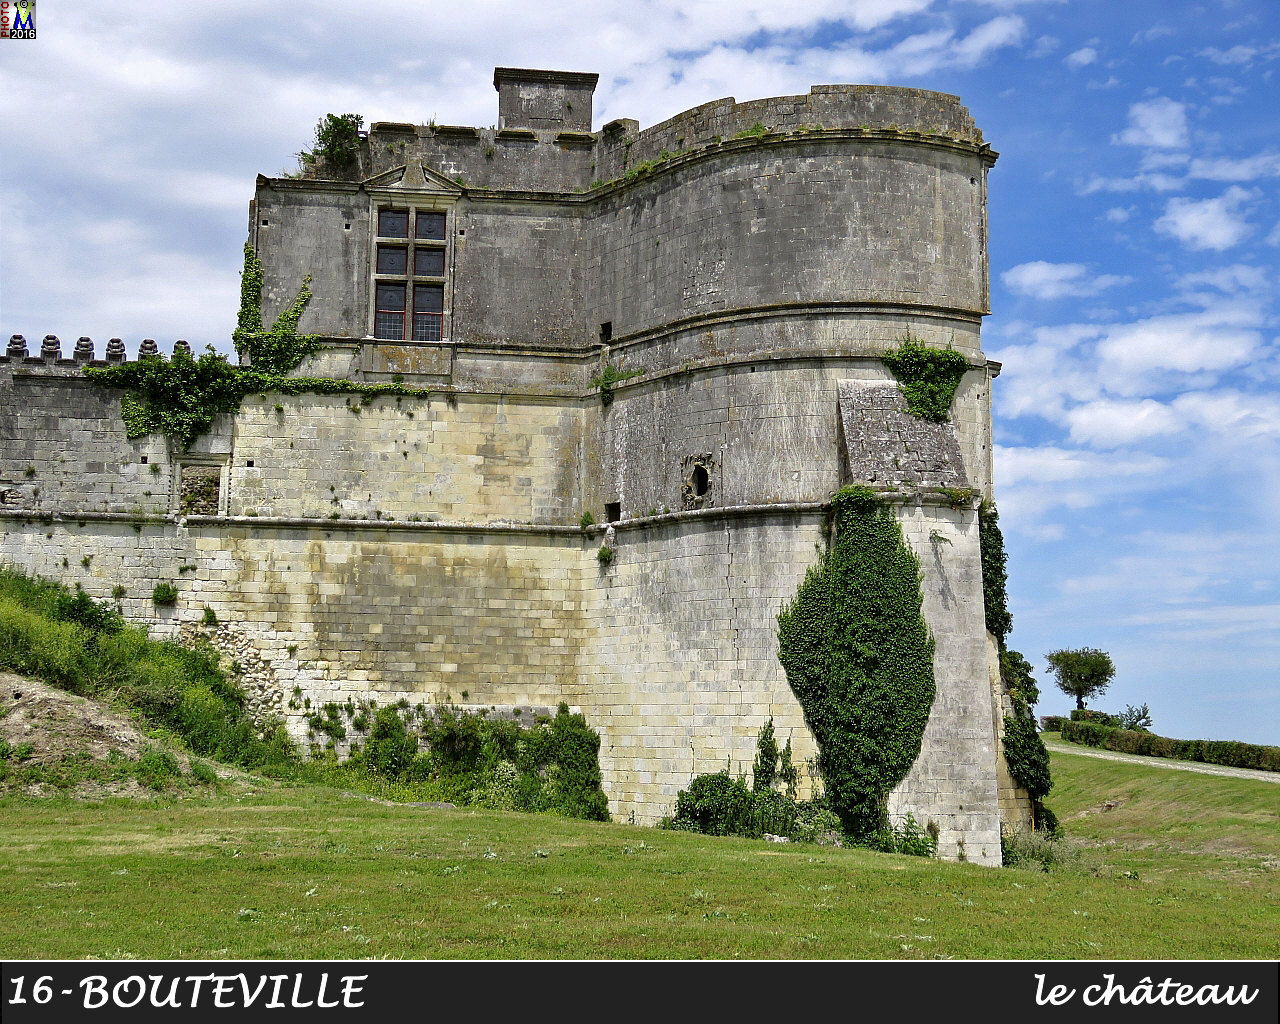 16BOUTEVILLE_chateau_1006.jpg